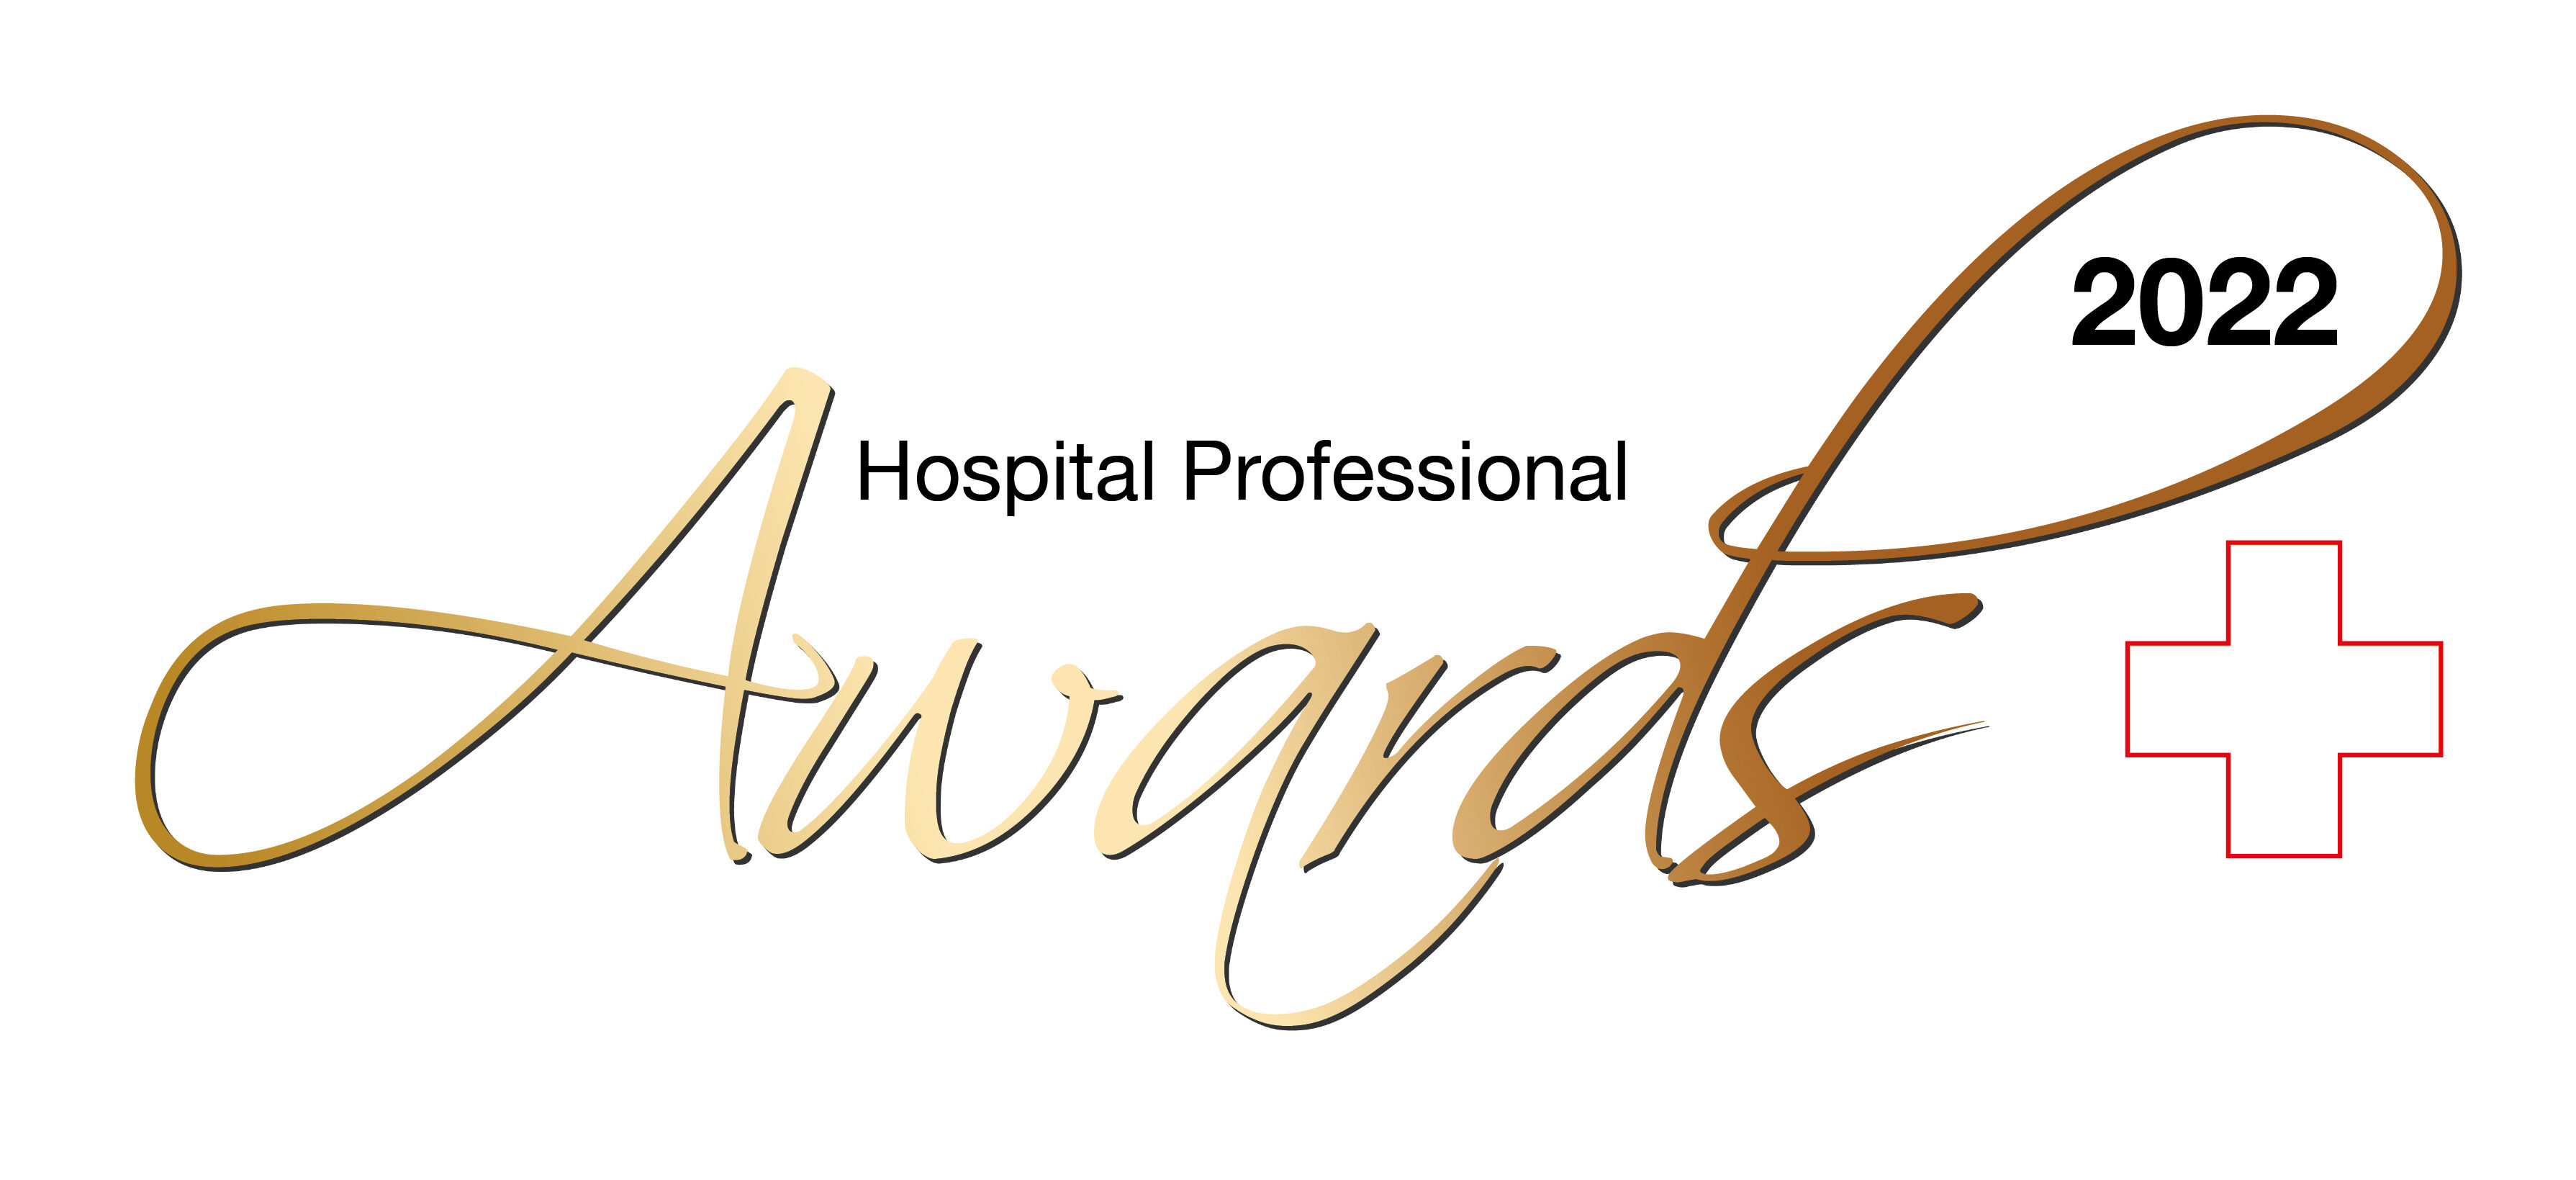 Hospital Professional Awards